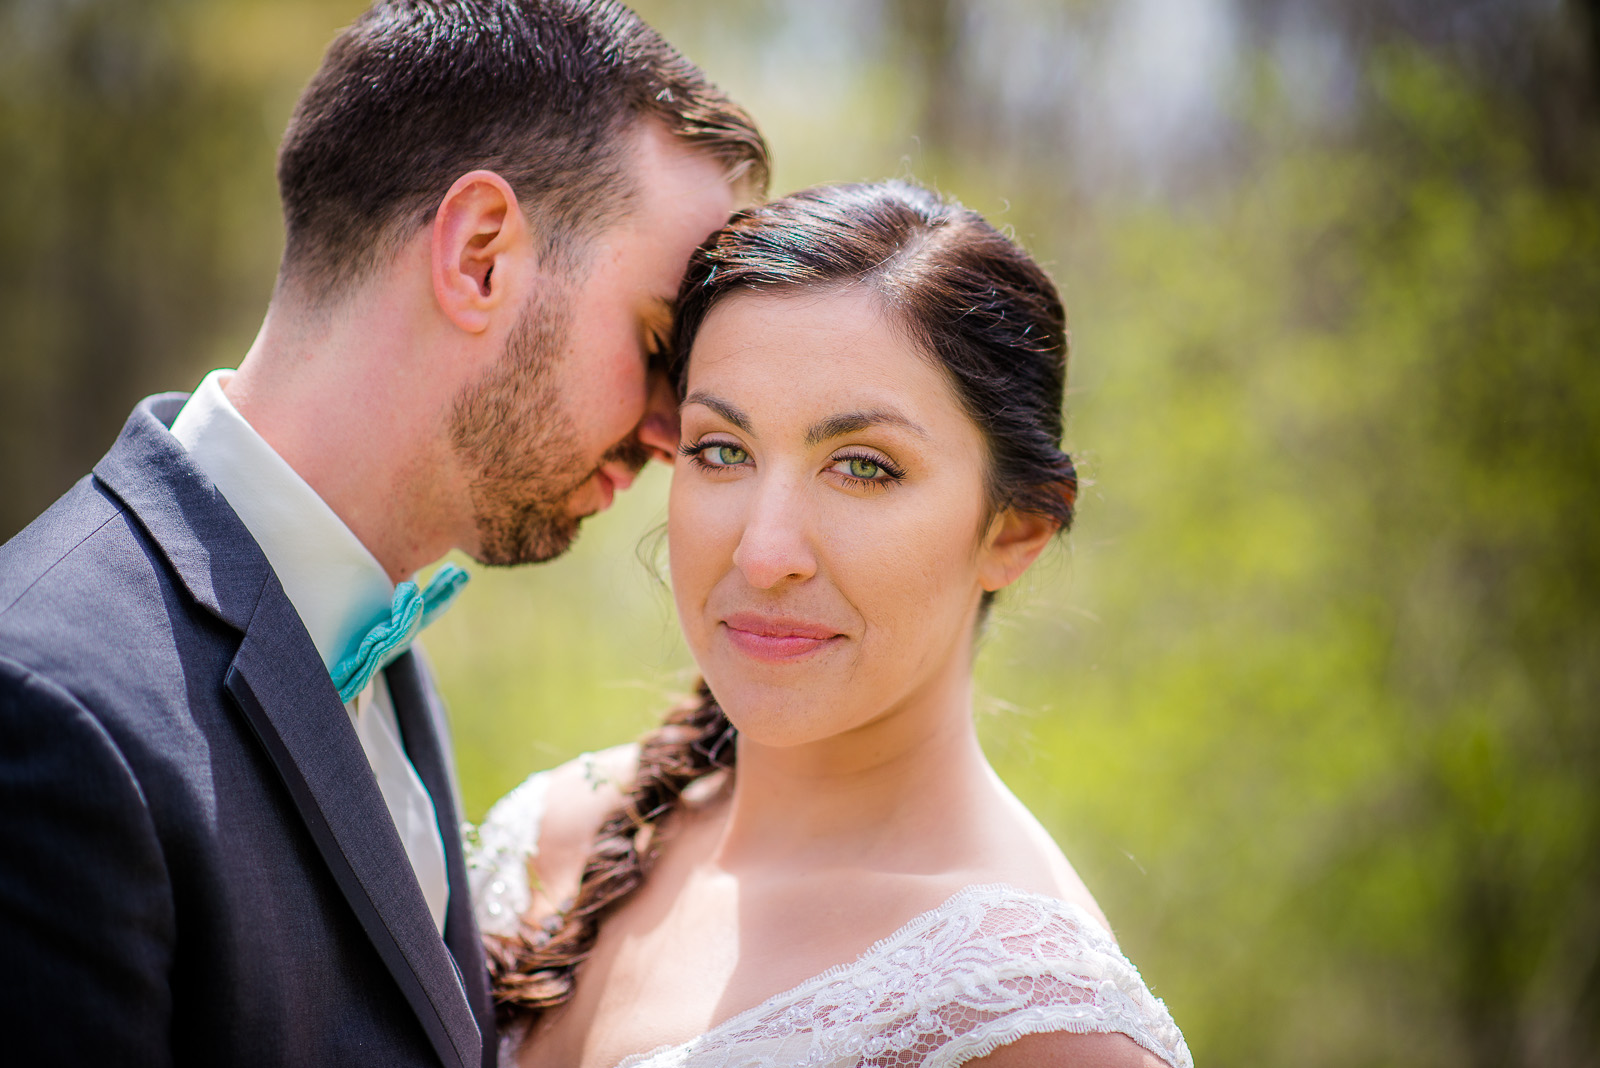 Eric_and_Christy_Photography_Blog_2017_Best_Portraits-9